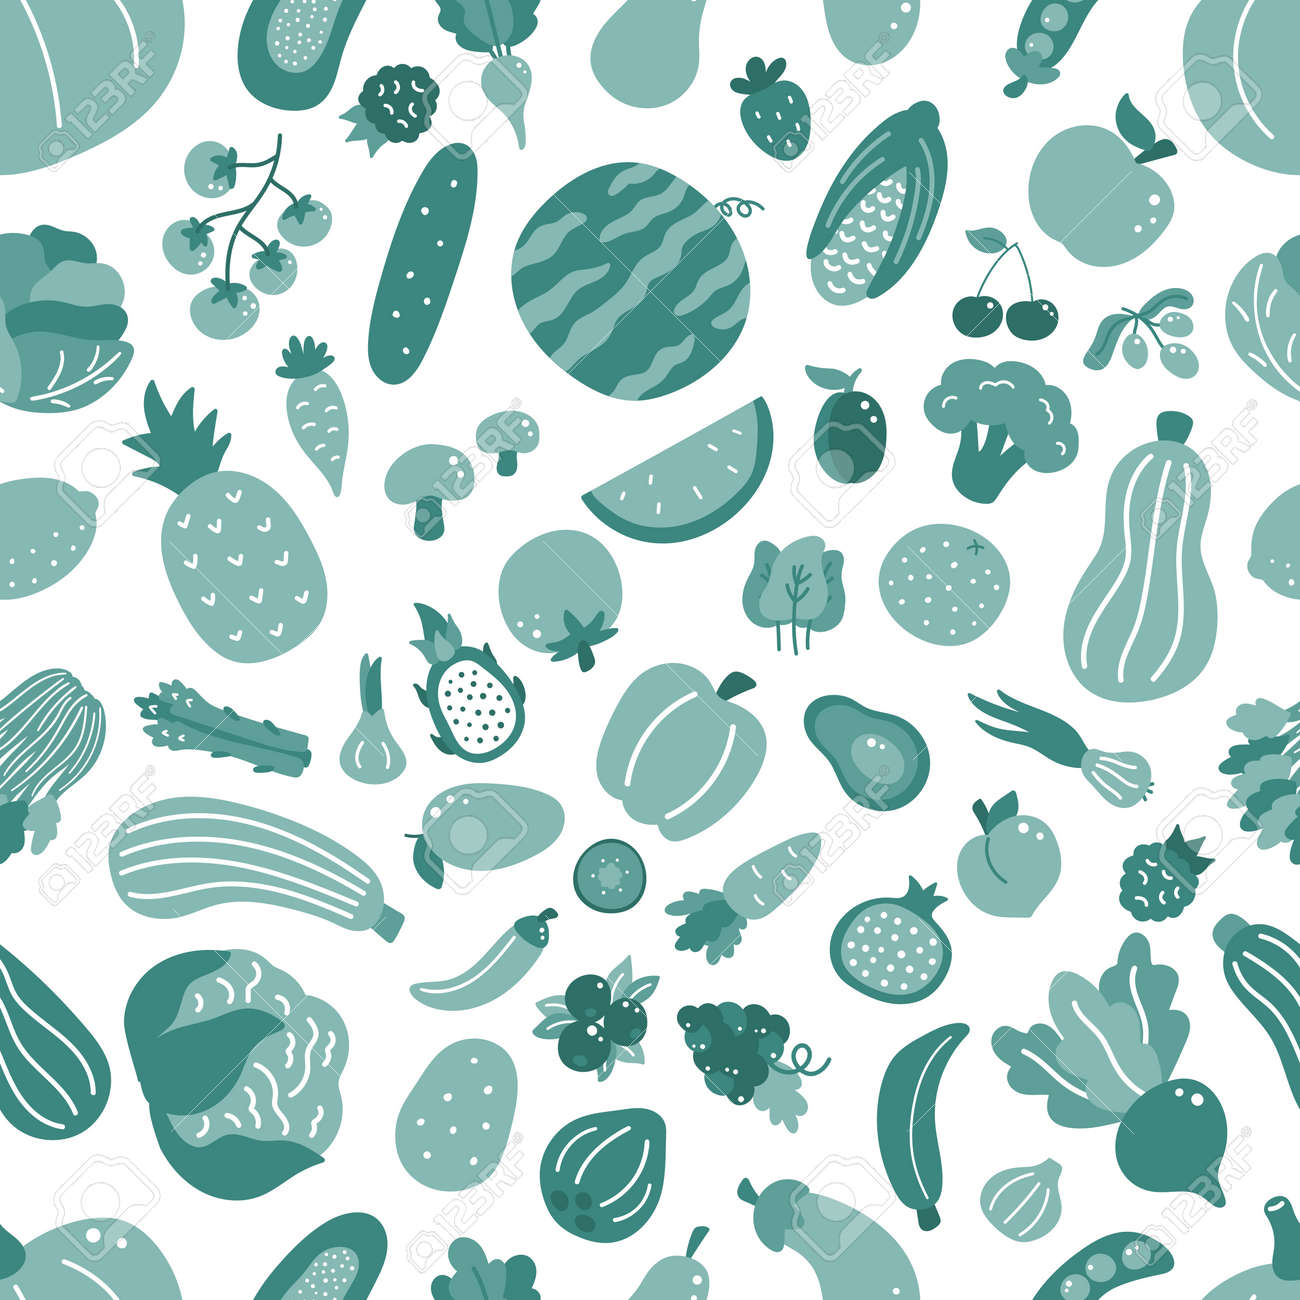 Seamless pattern with vegetables and fruits. Hand drawn doodle organic food on white background. Green monochrome vector illustration. Healthy food. - 169087144